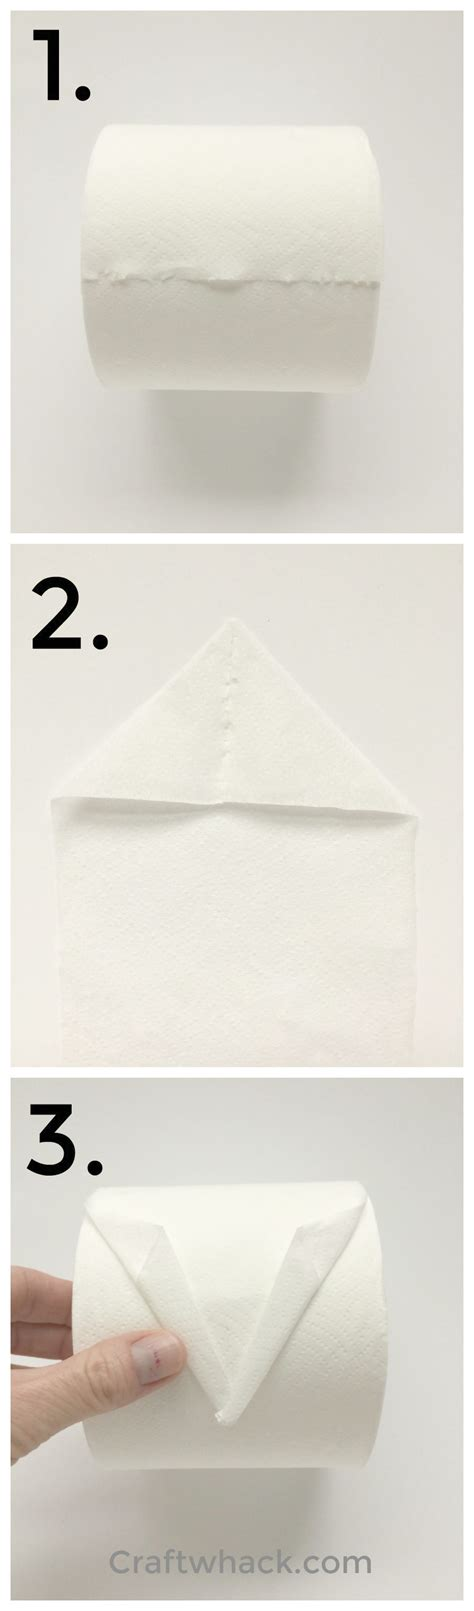 Toilet Roll Origami - ahoy learn to fold a toilet paper origami sailboat